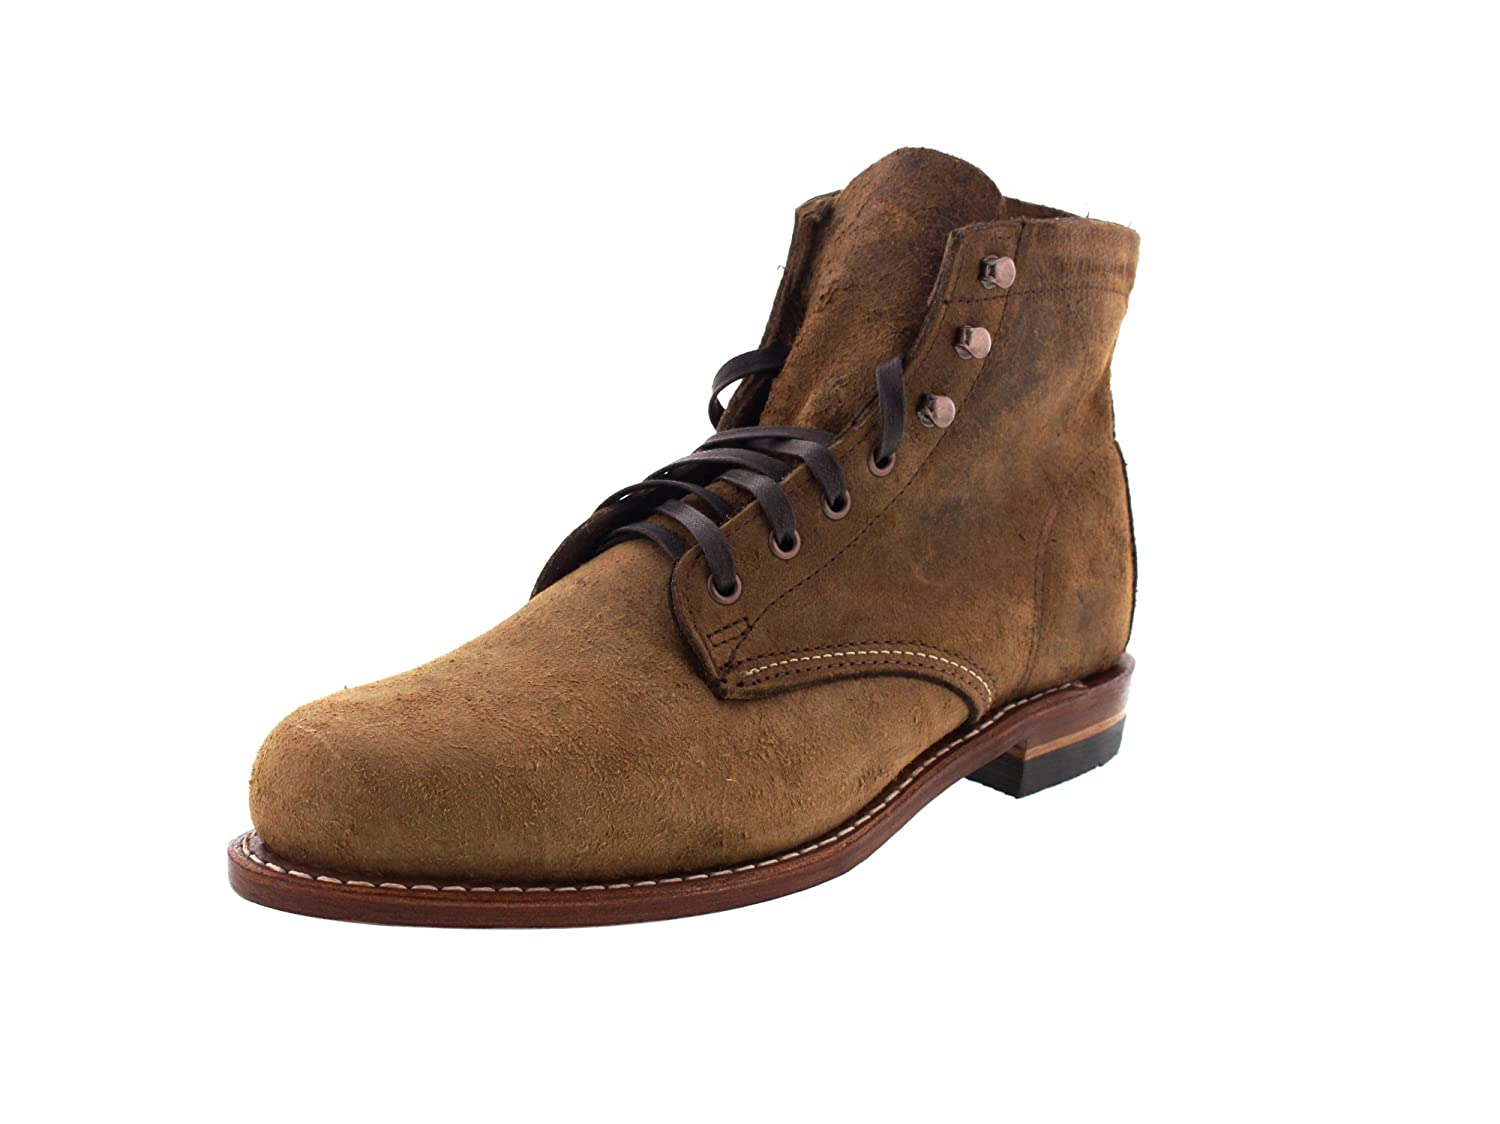 Wolverine 1000 Mile Men's Wolverine 1000 Mile Boots B01N2PI51A 8.5 D(M) US|Brown Waxy Suede